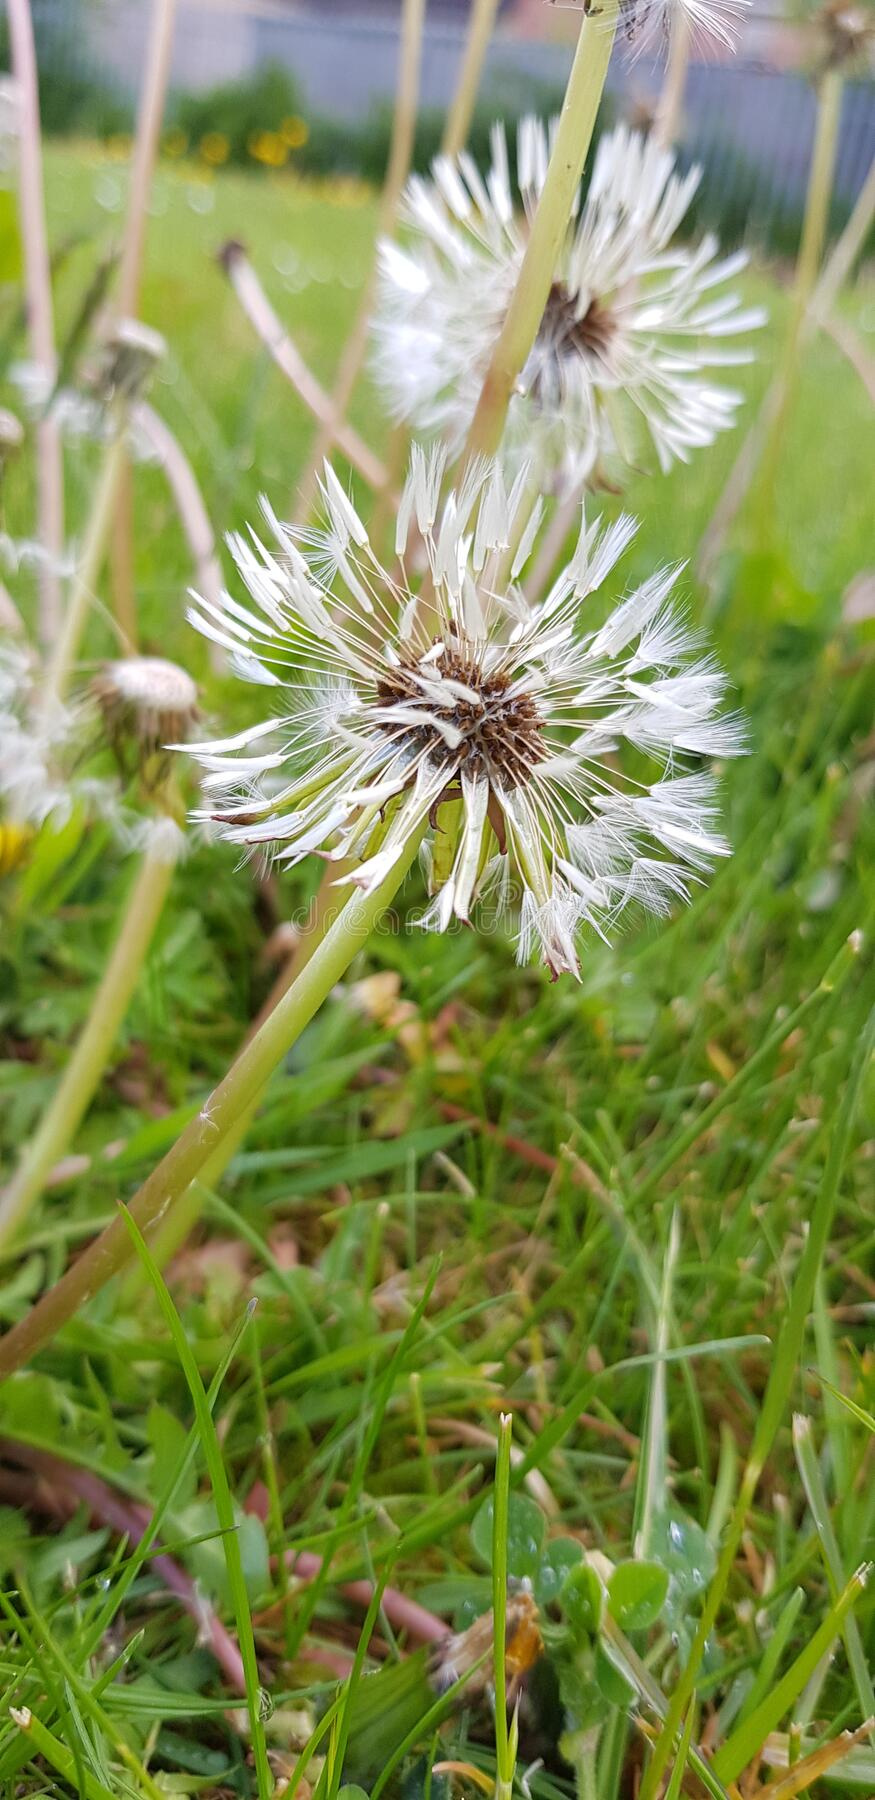 Beautiful floral botanical close up image of a flower in superb detail dandelion grass stock images